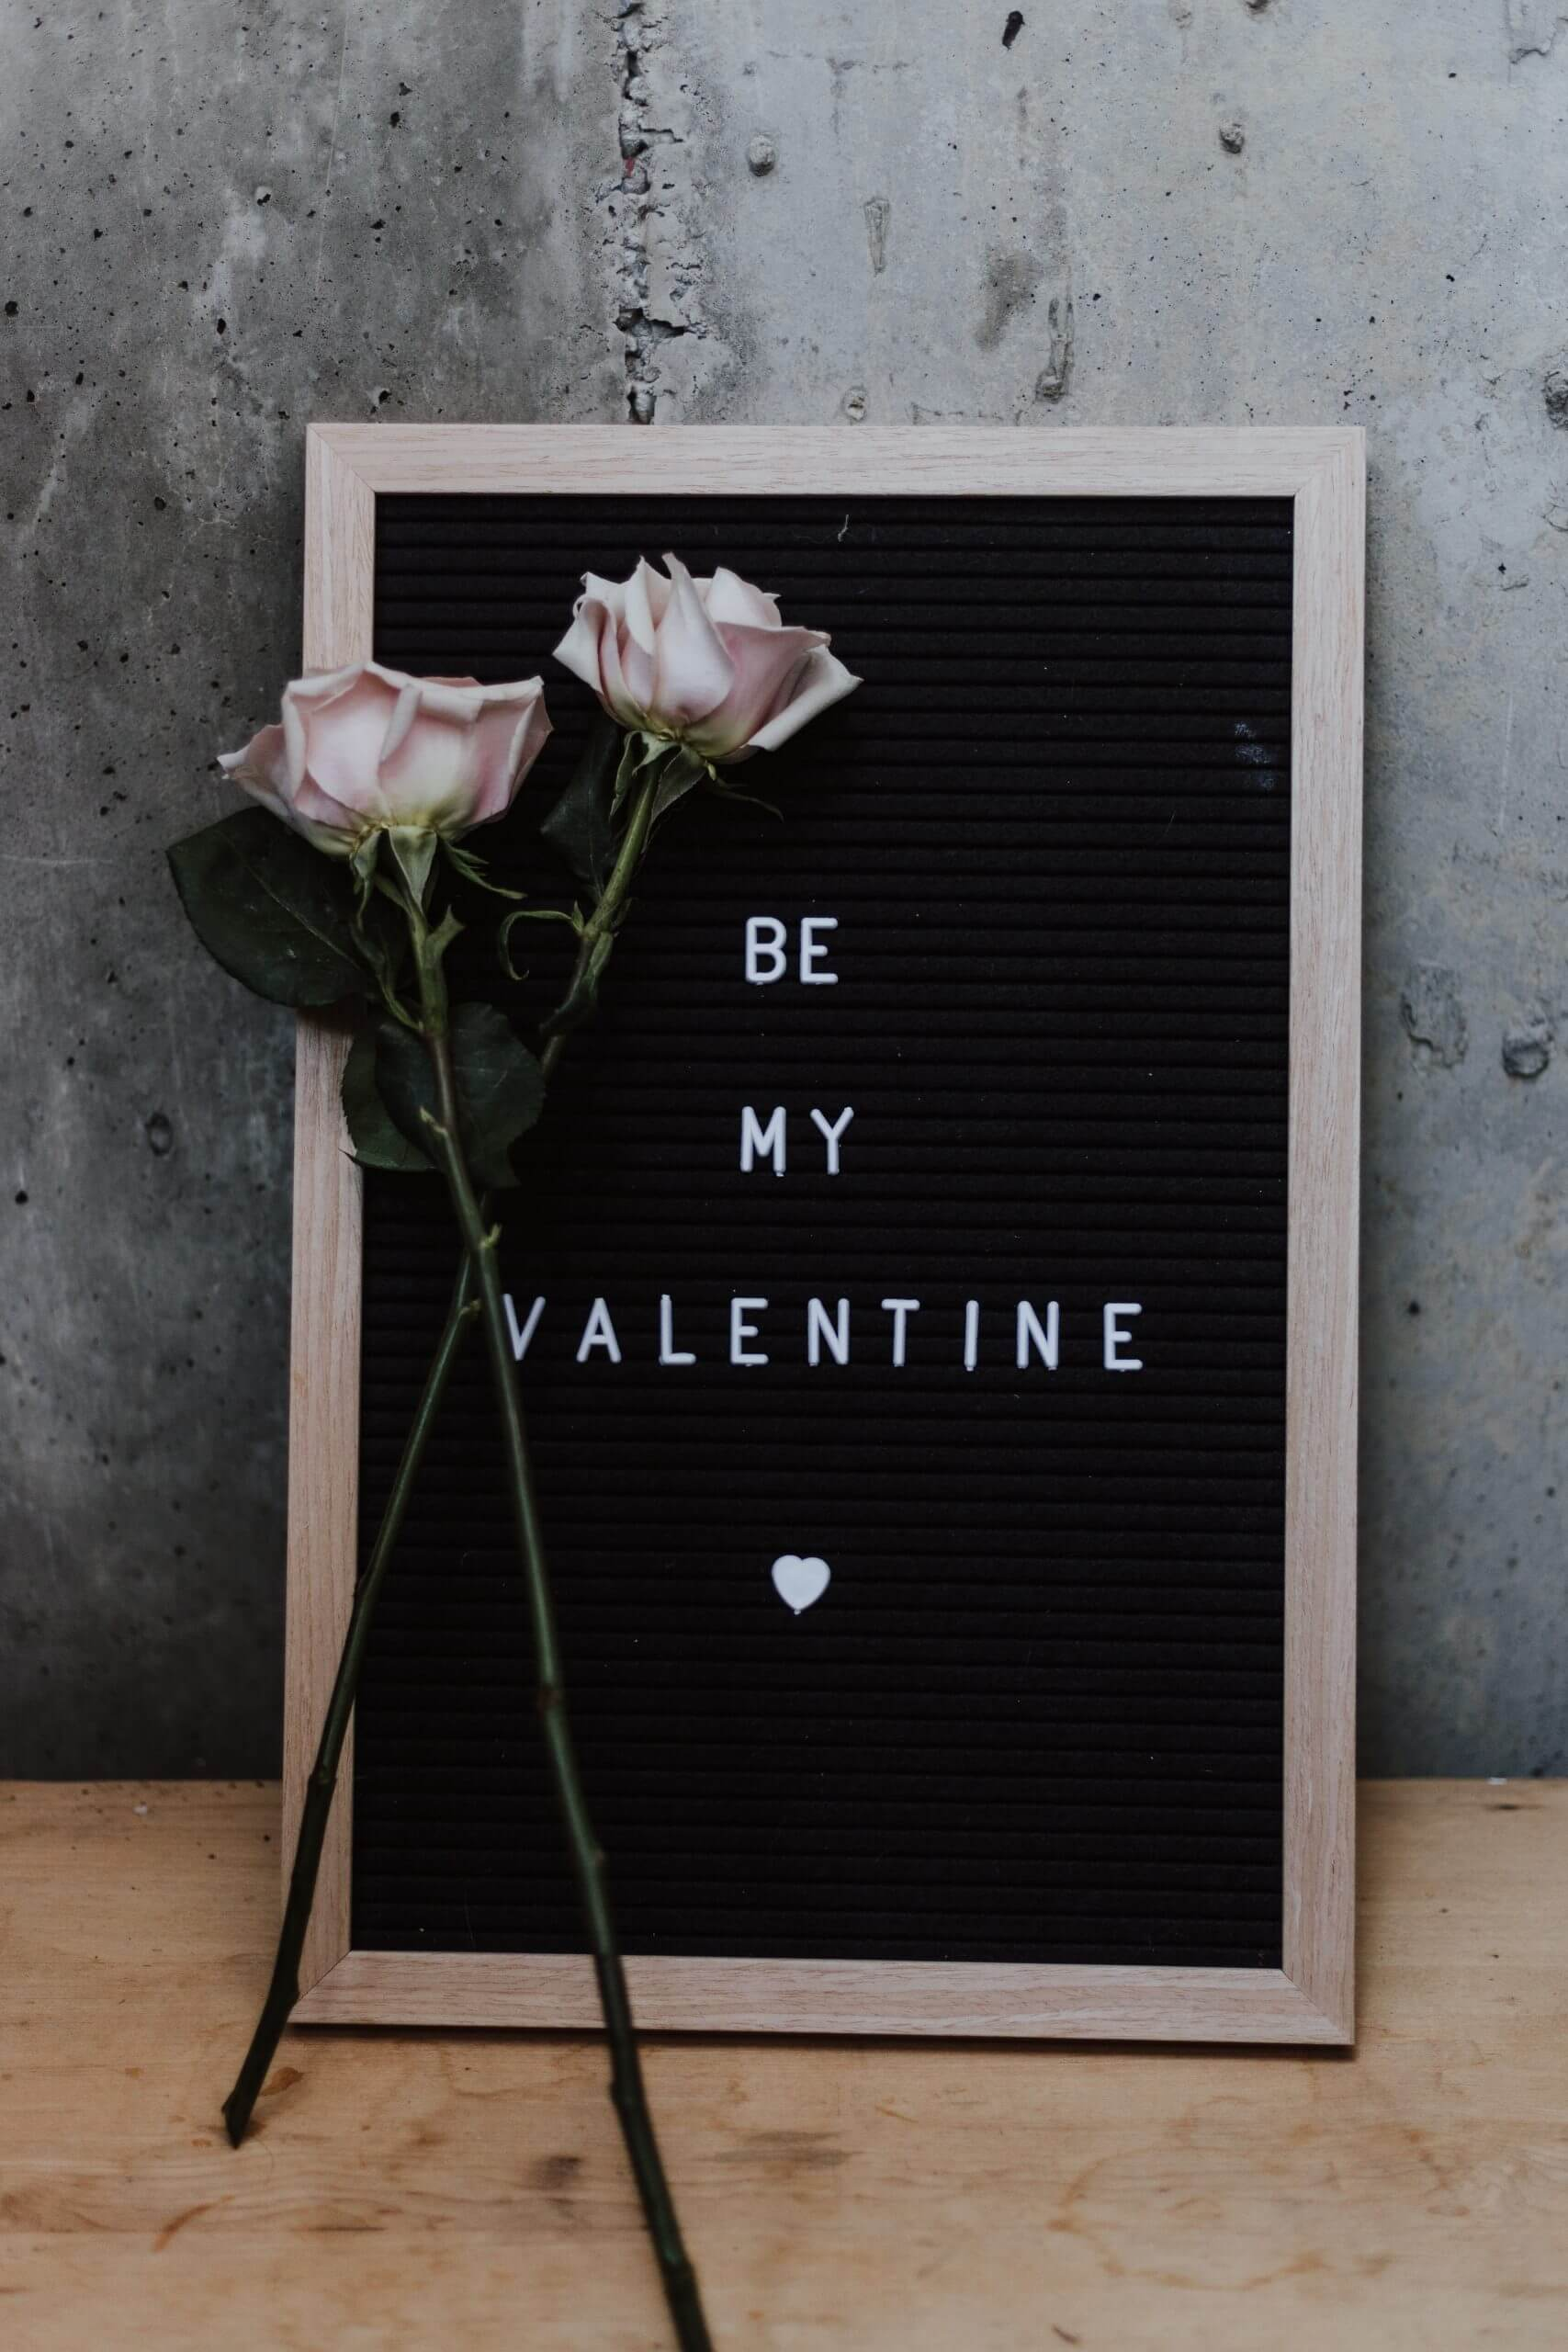 'Be My Valentine' in text on a board.